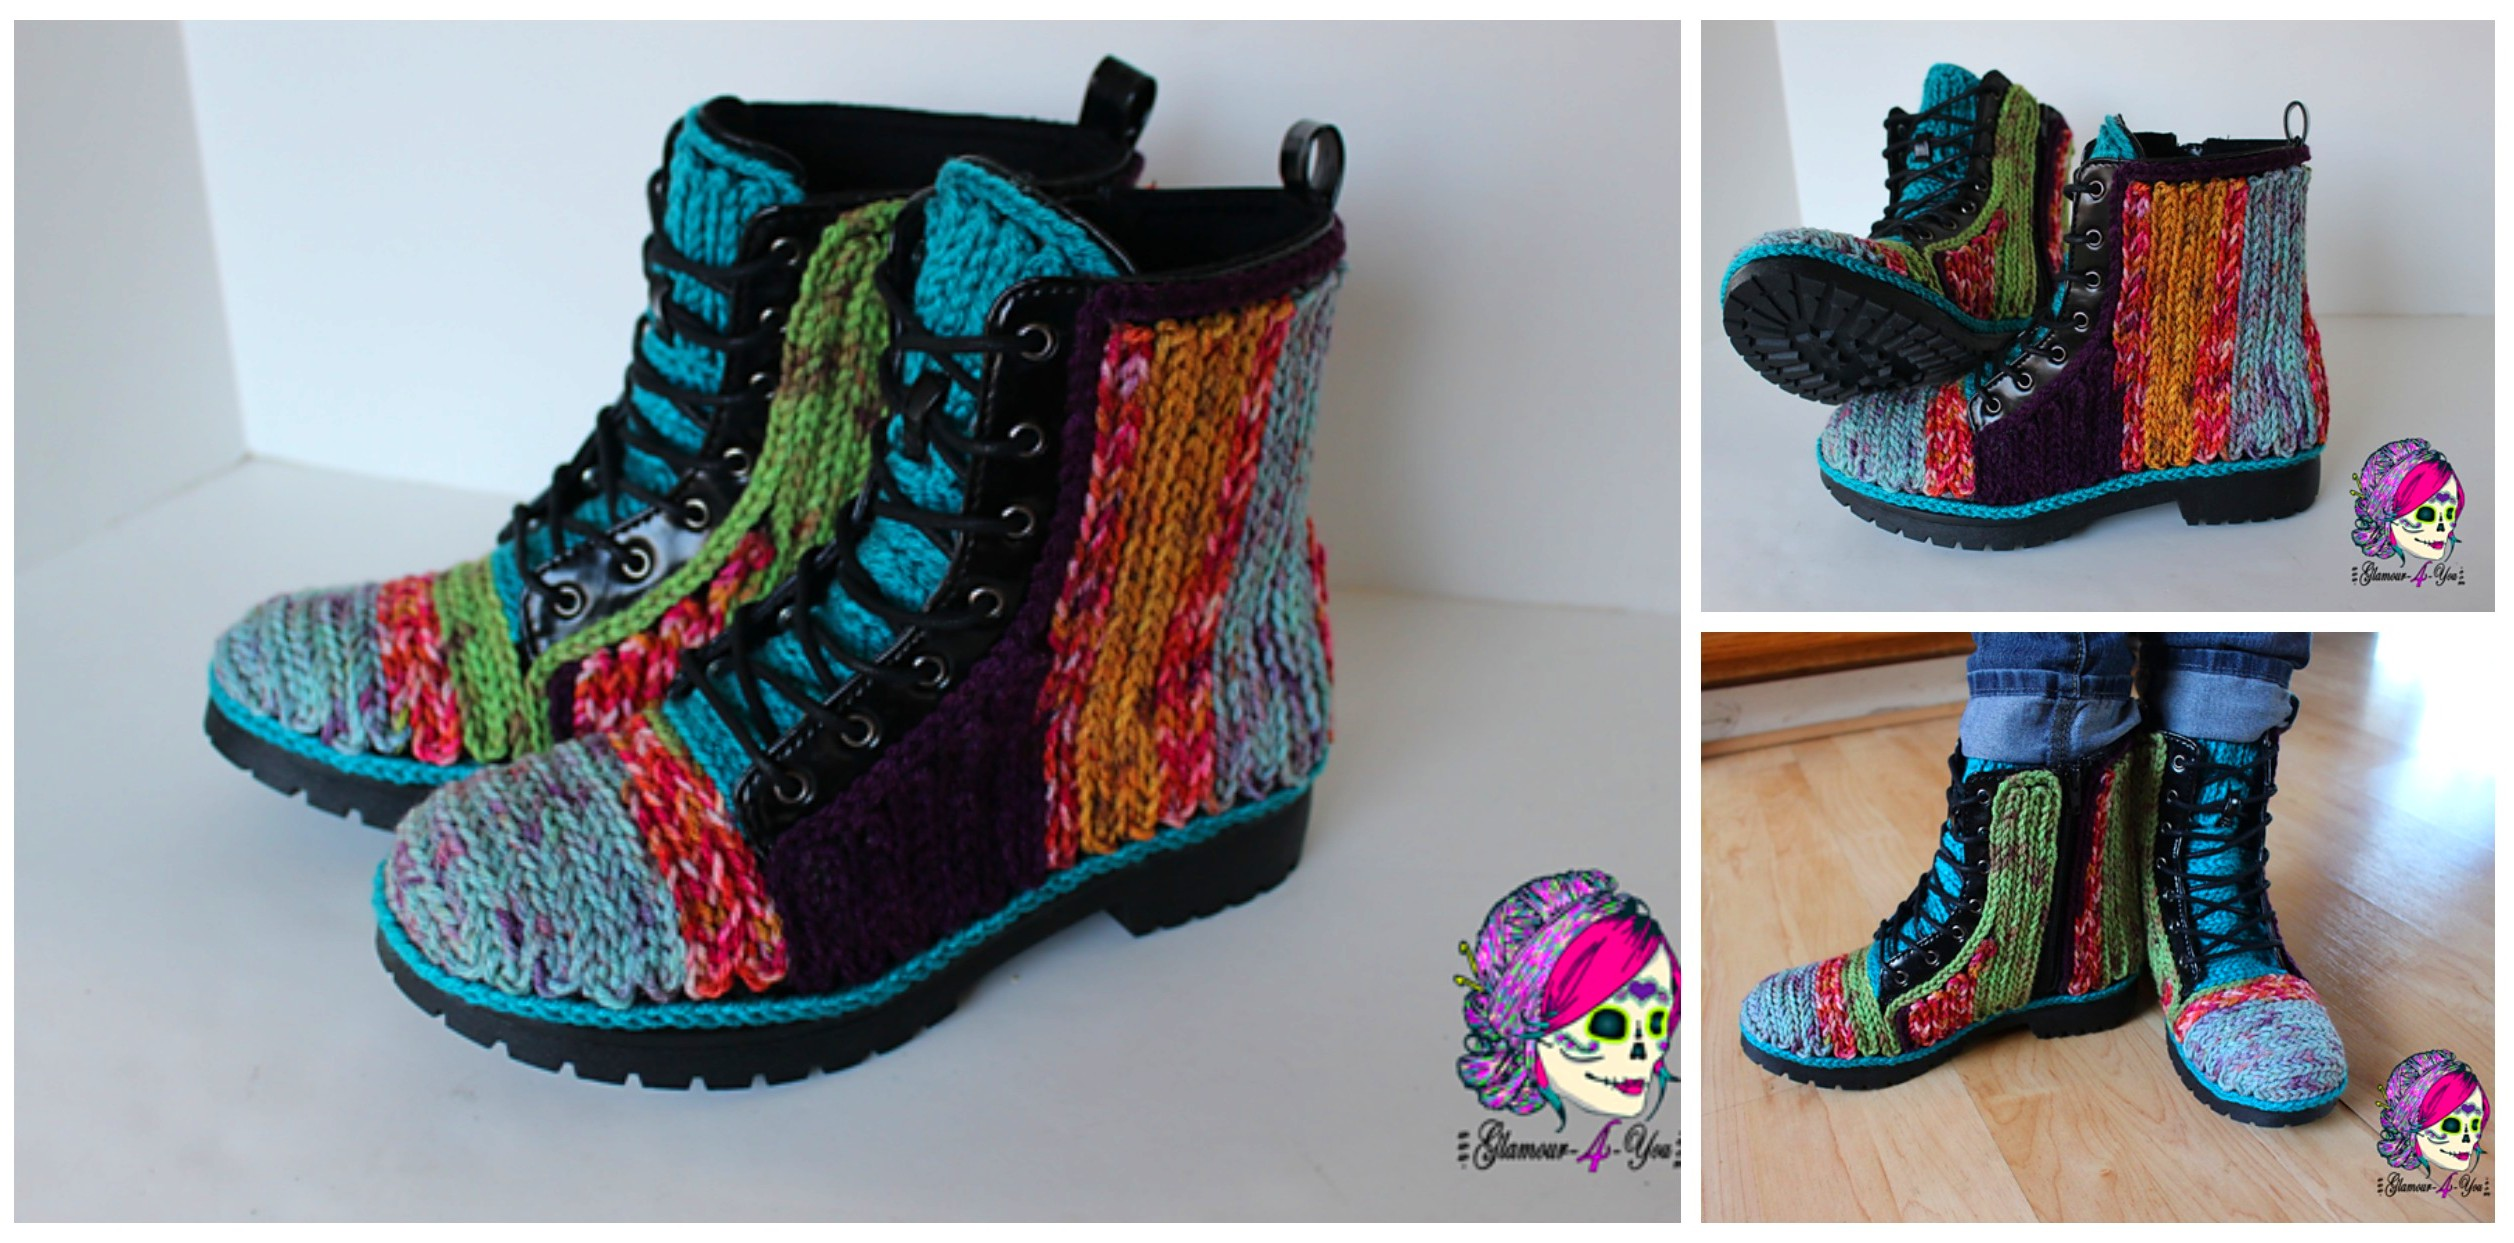 Creative Outdoor Boots